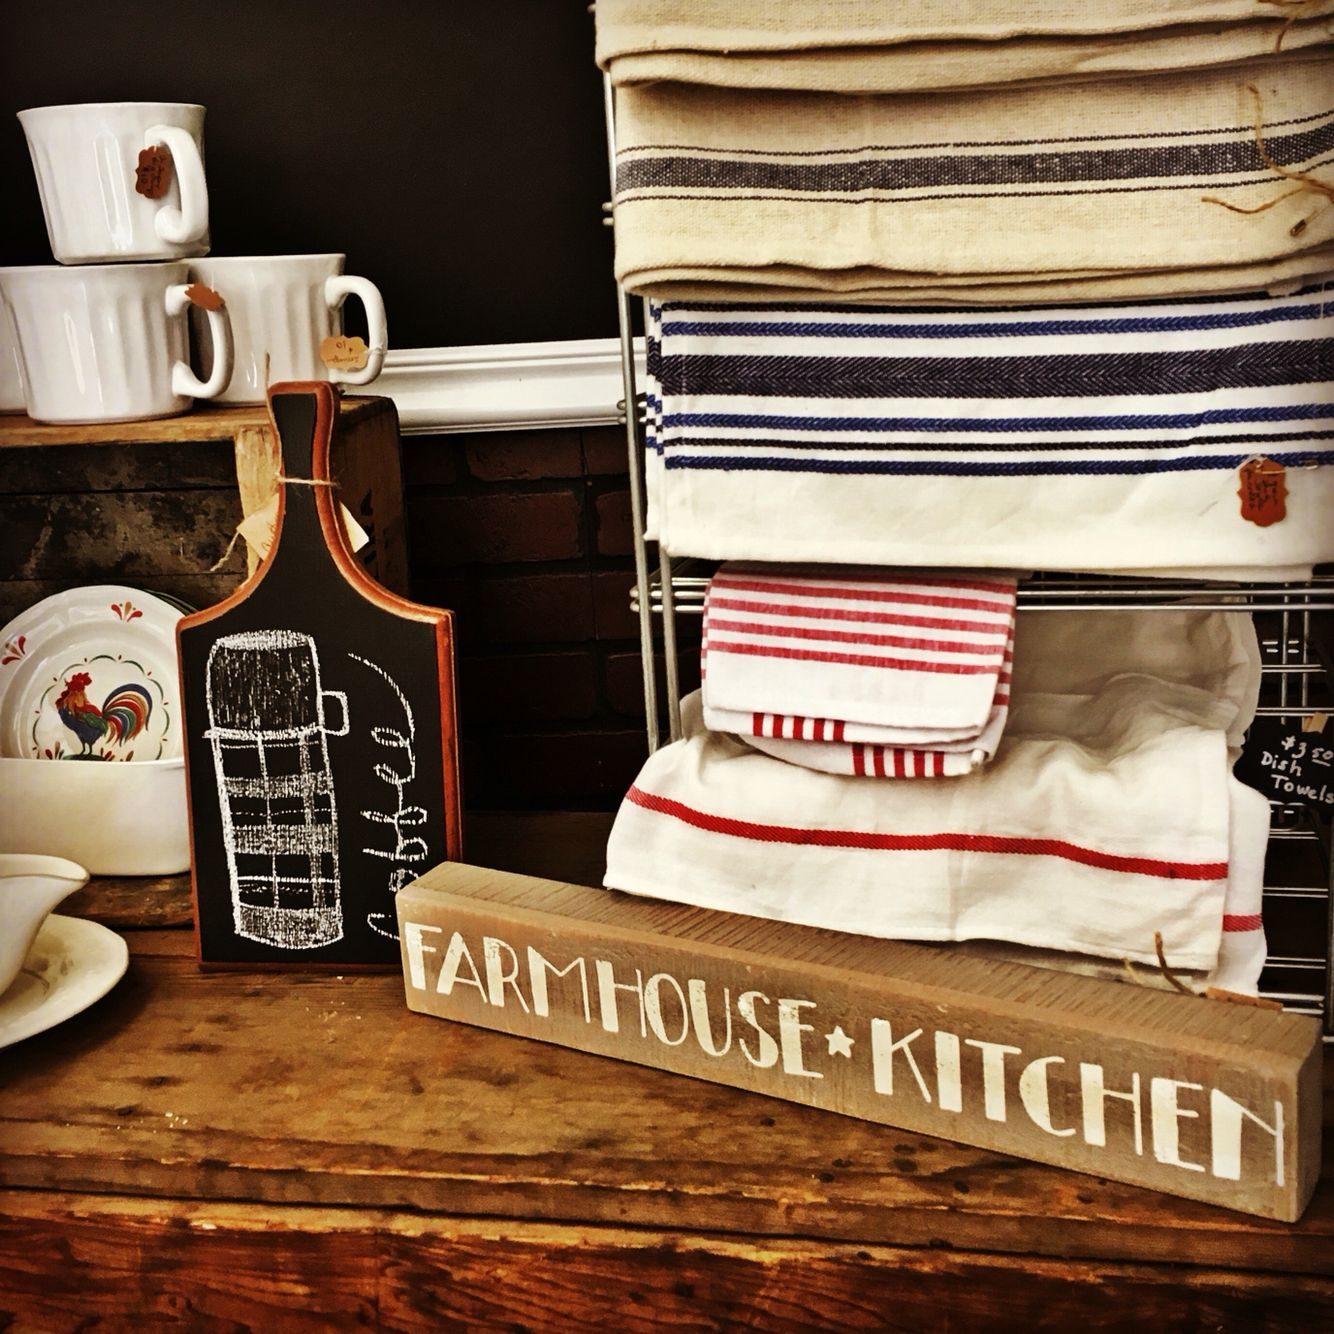 My little shop lots of Farmhouse swag in stock!! House